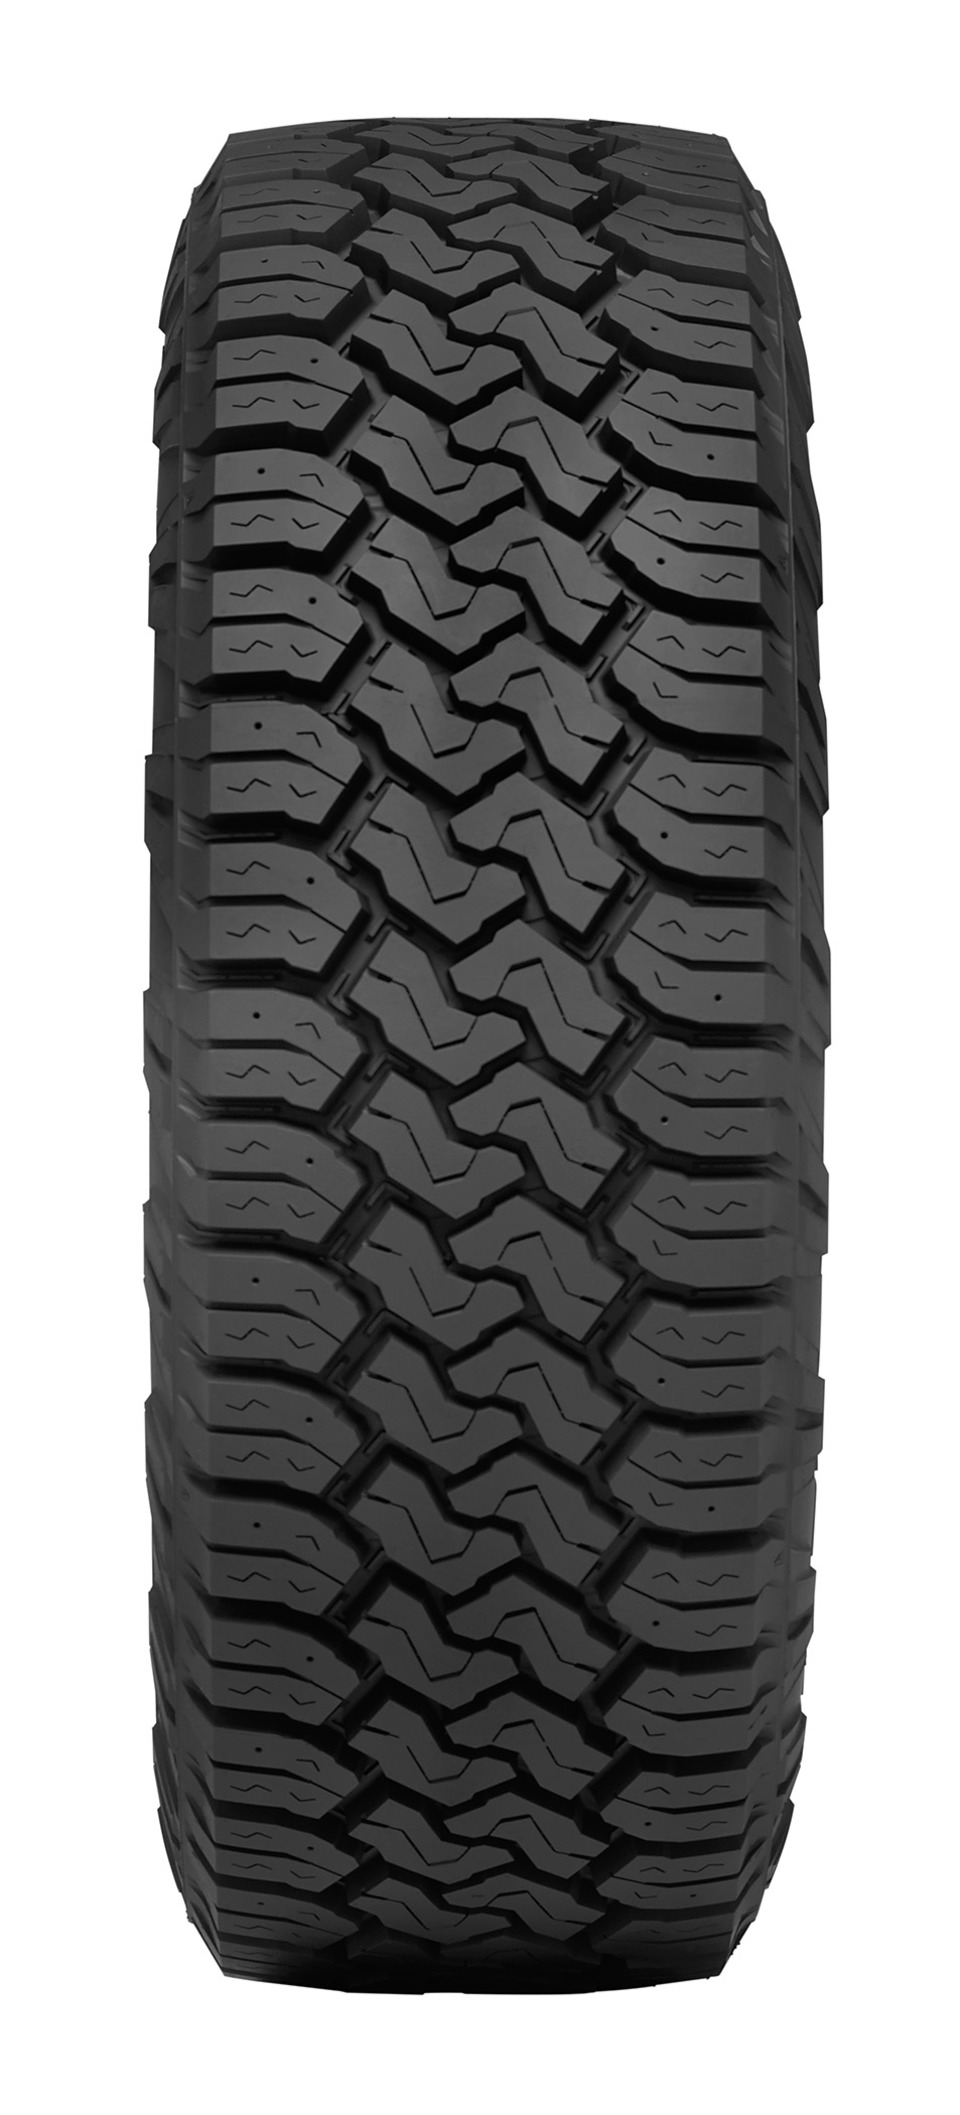 Toyo Tire U S A Corp Open Country C T in Tire & Wheel